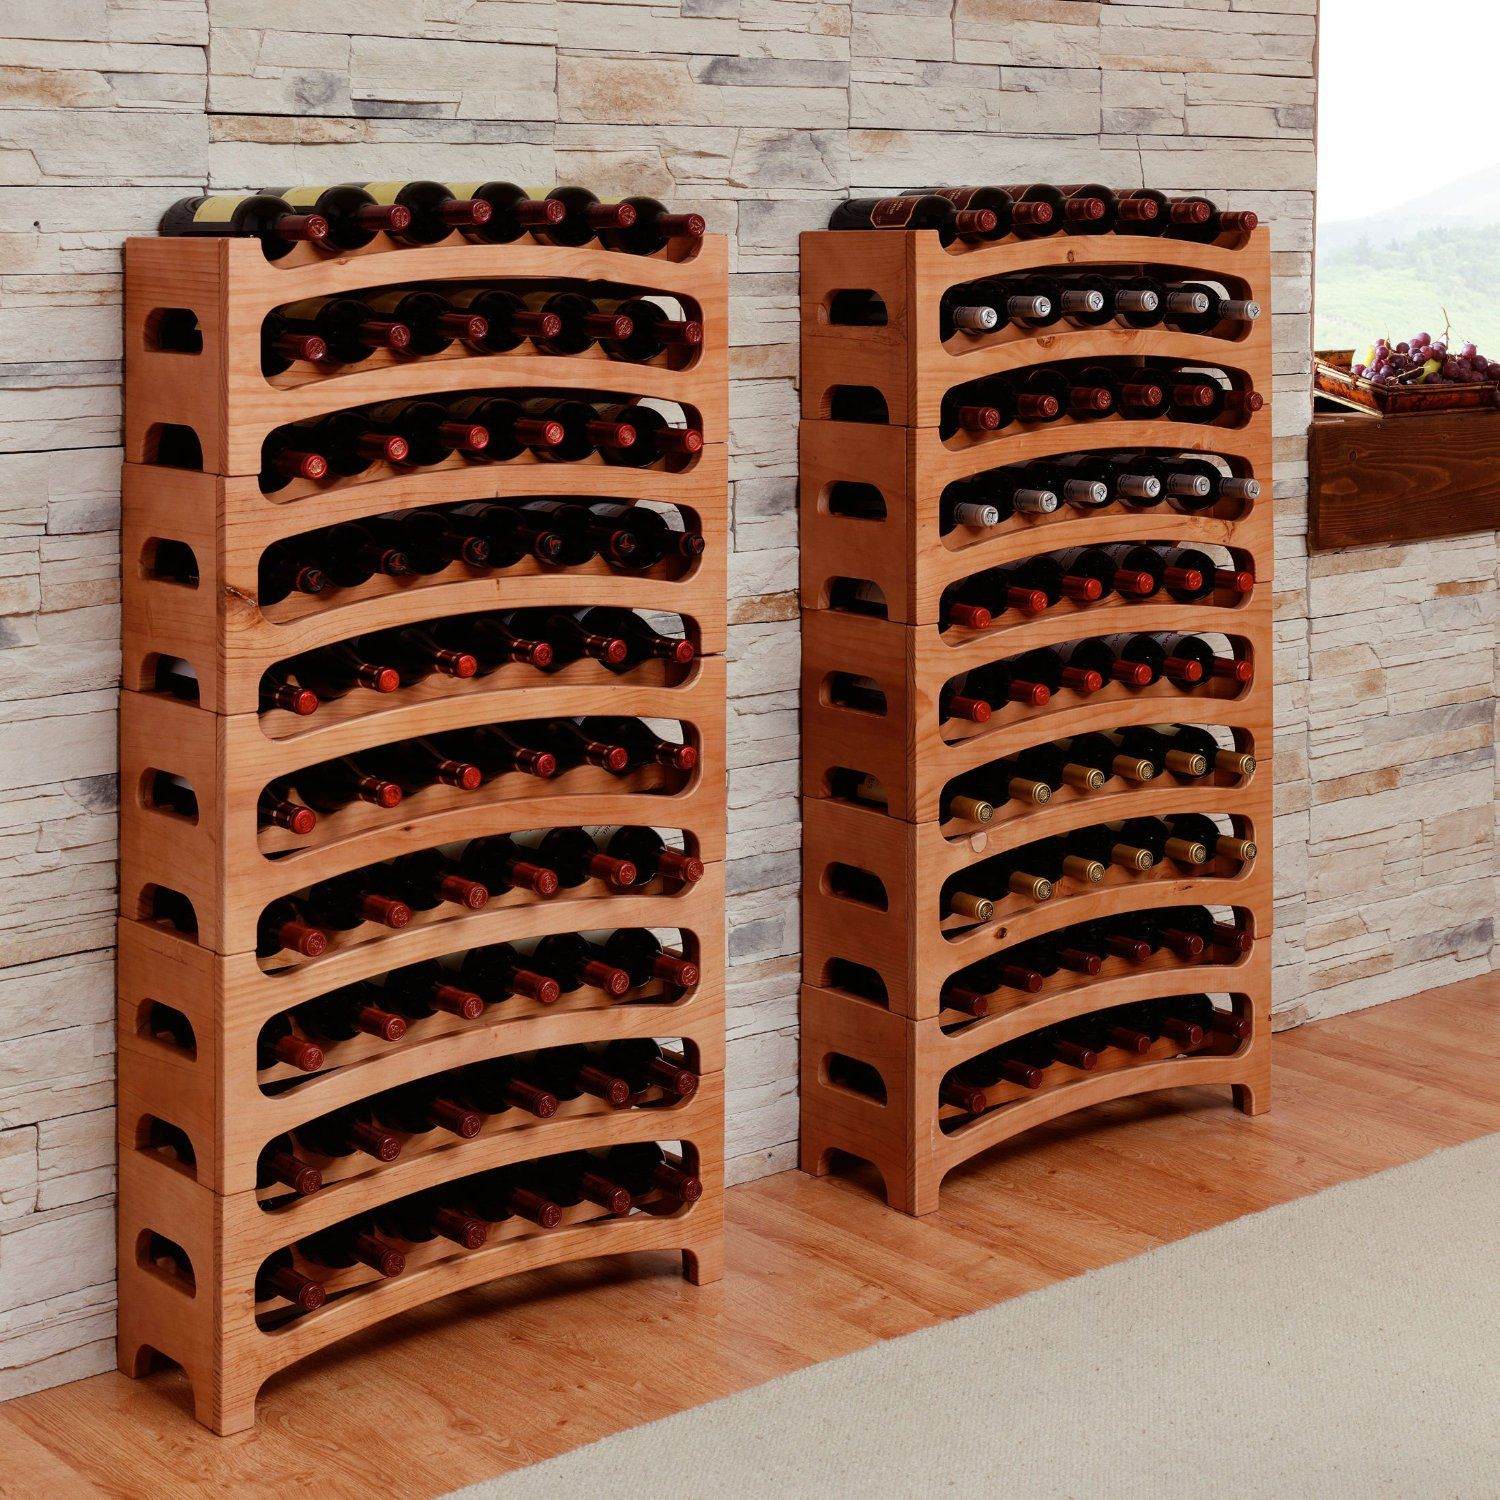 Cantinetta Legno Per Vino wine cellar / wine shelf / bouquet system, solid wood